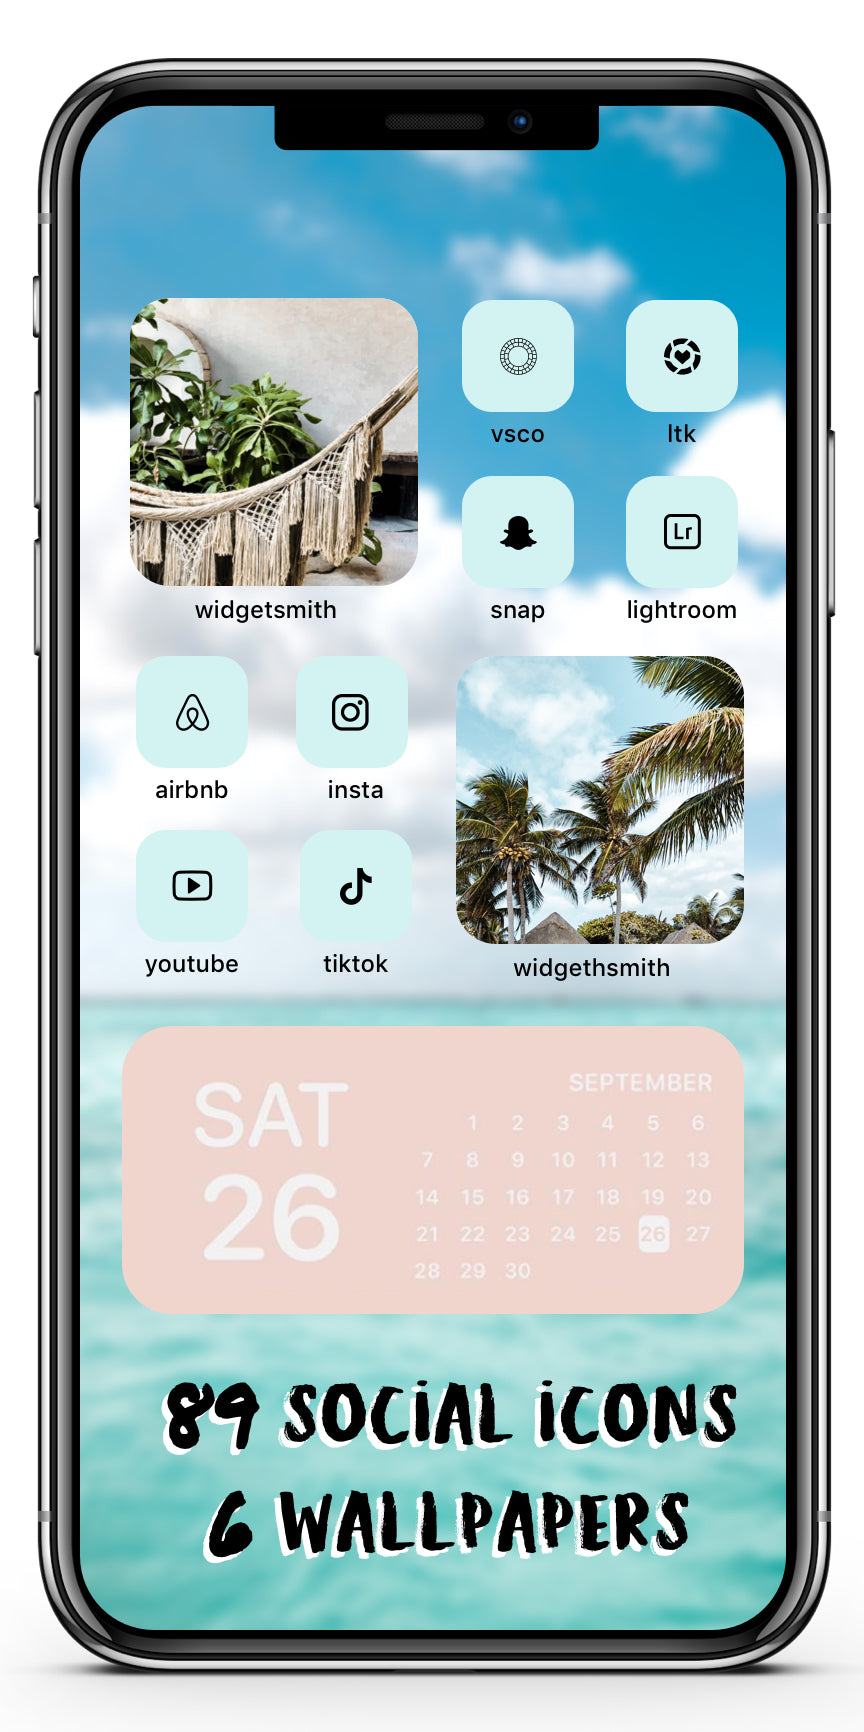 Tropical Icon Theme Social + Wallpaper Expansion Pack iOS14